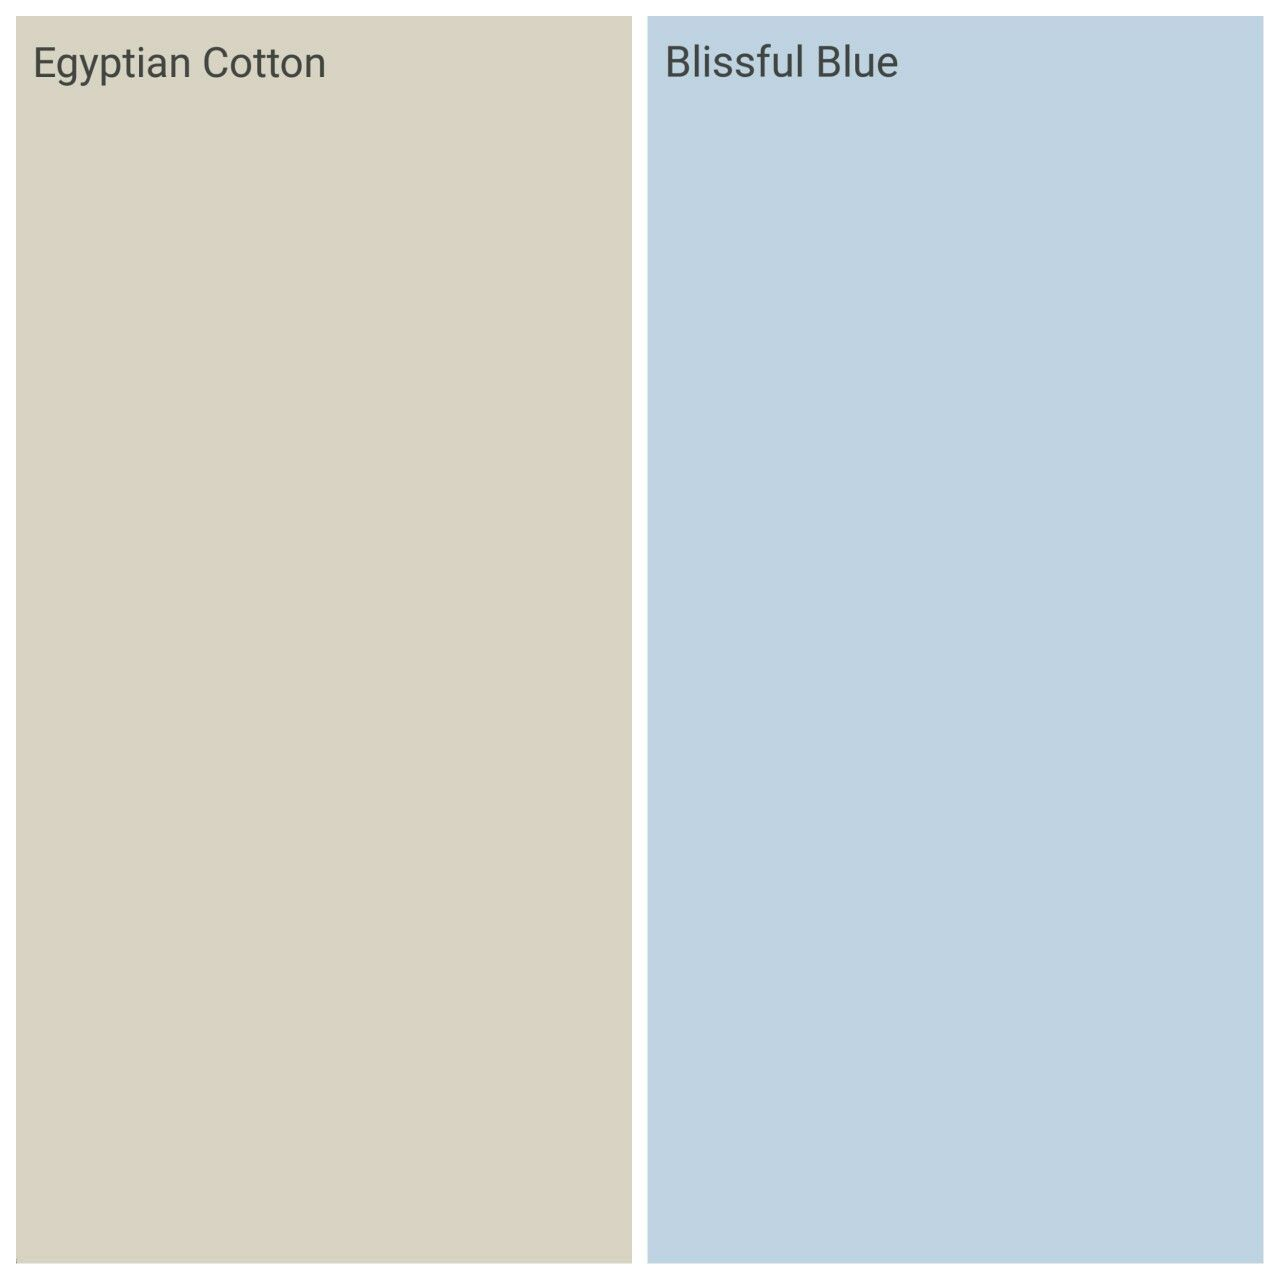 Dulux Blissful Blue And Egyptian Cotton Guest Bedroom Master Bedrooms Decor Nursery Guest Room Paint Color Combos